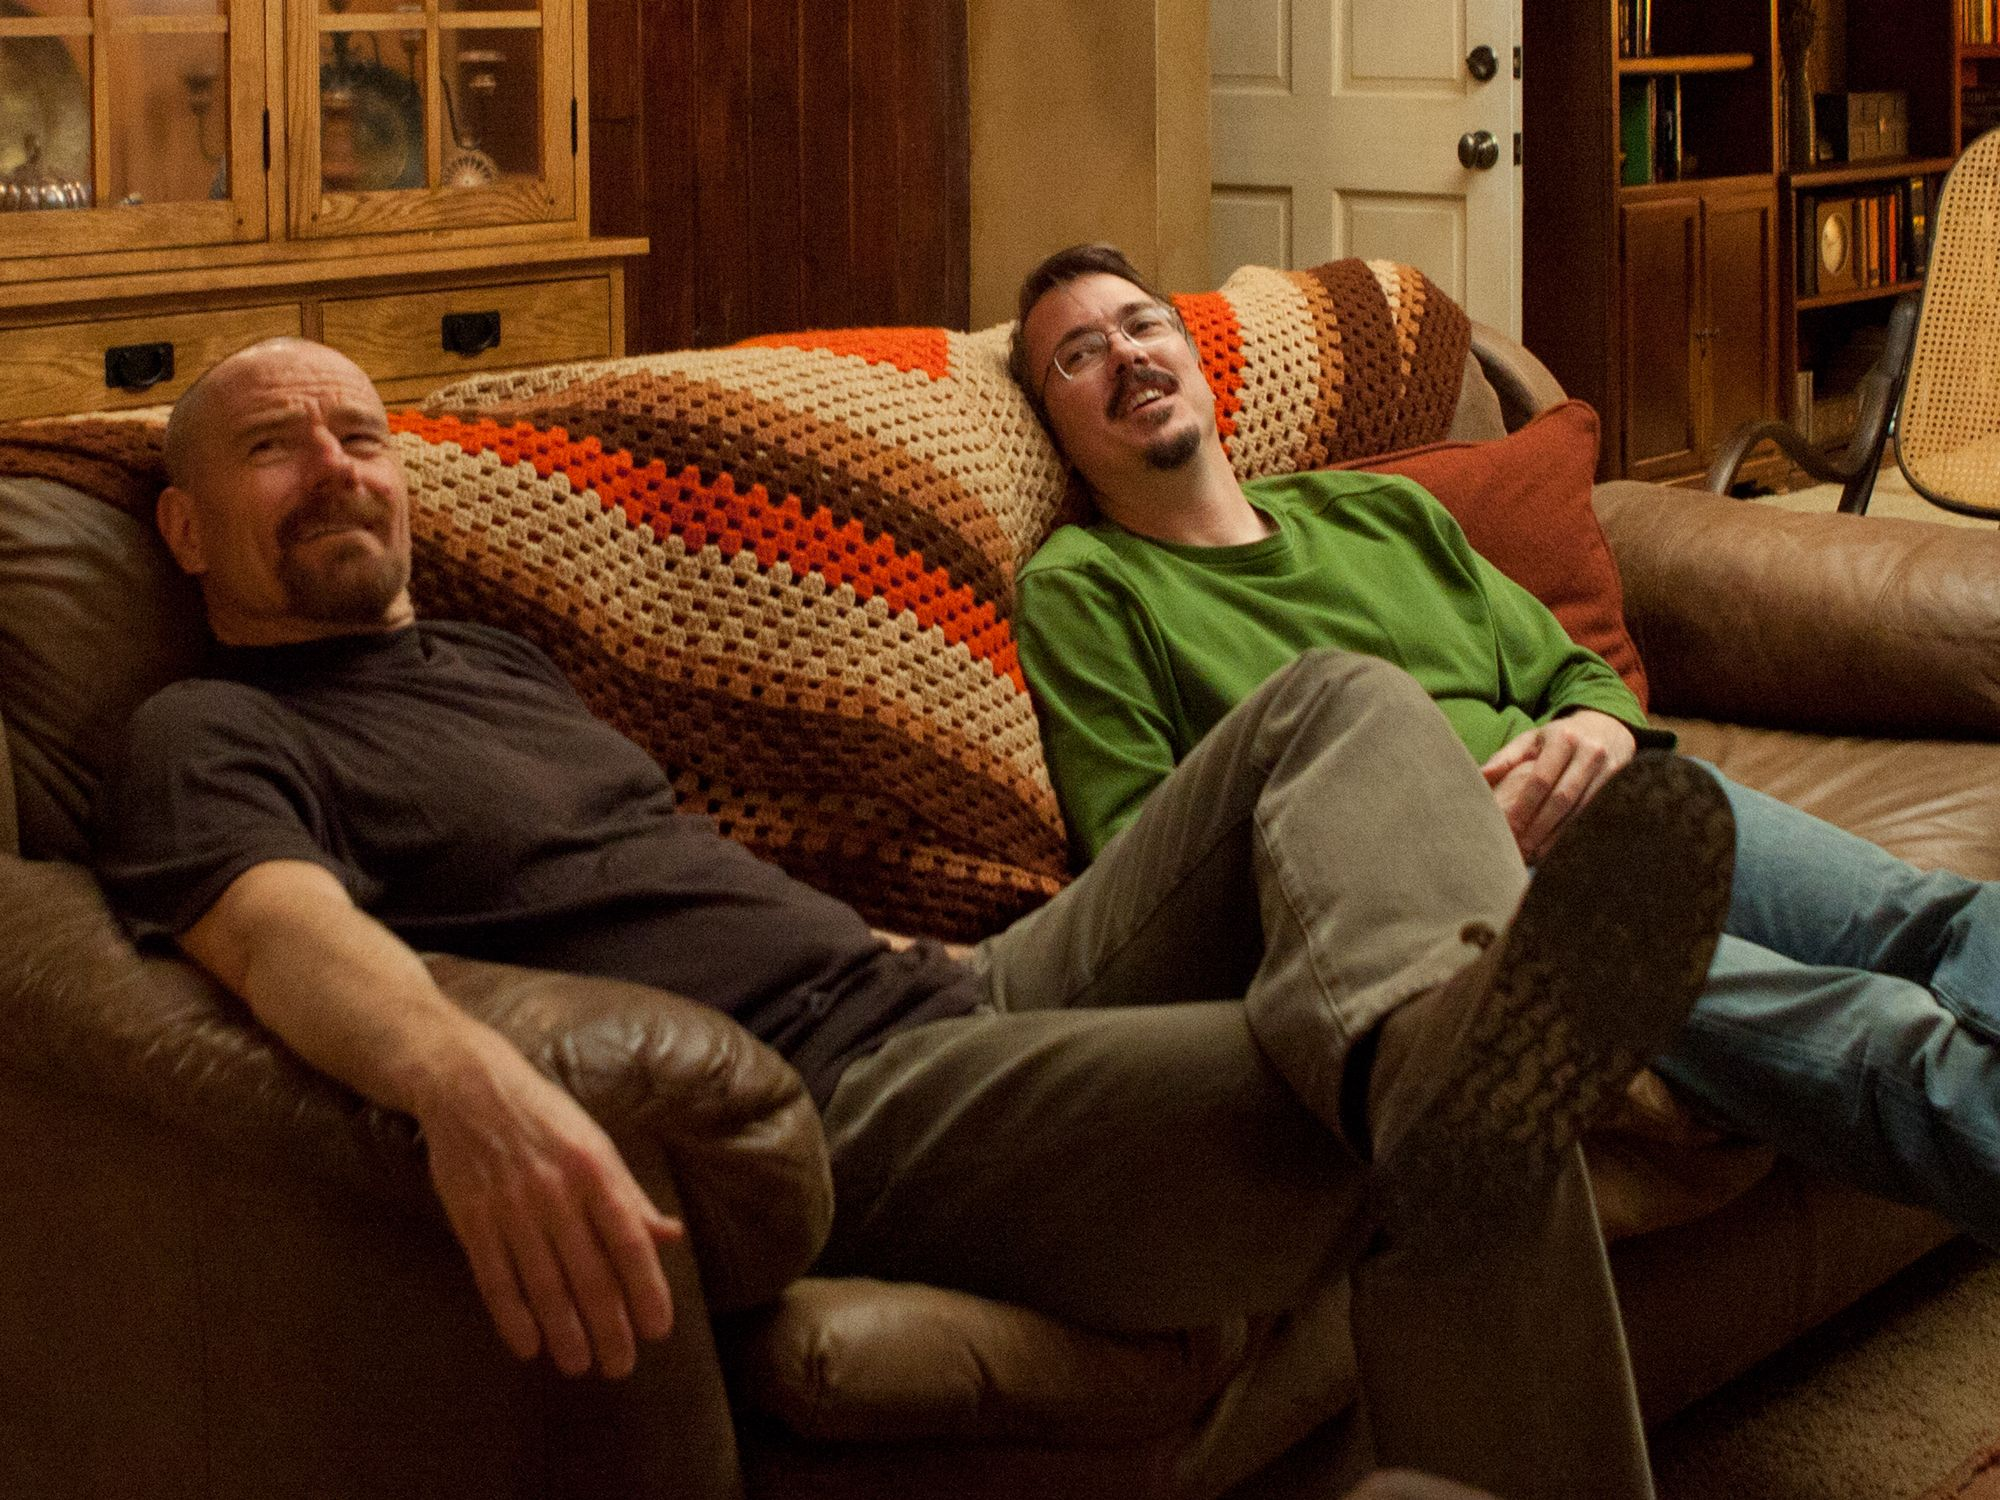 Milch Auf Couch Breaking Bad How Vince Gilligan Created Tv S Greatest Anti Hero